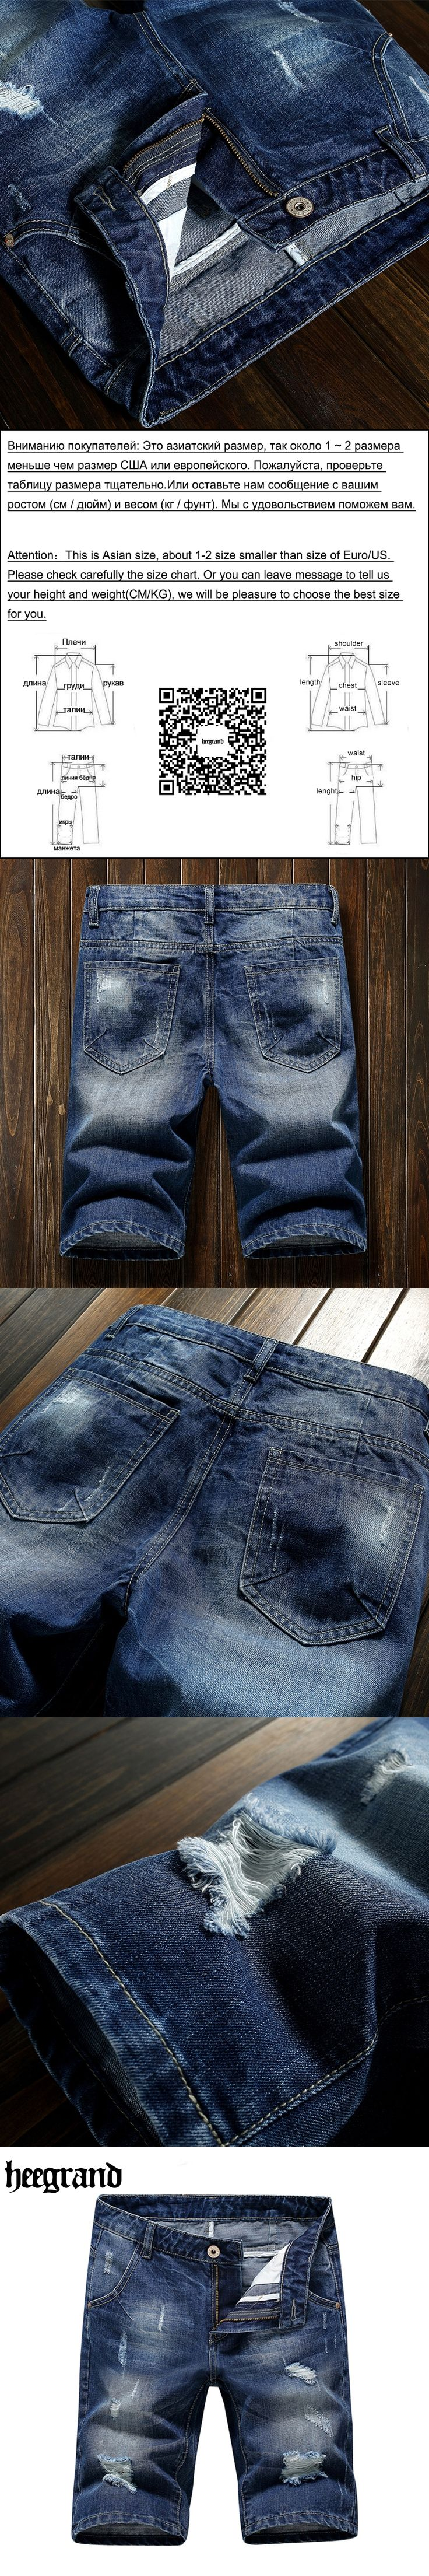 HEE GRAND 2017 Mens Patchwork Jeans Shorts Straight Fit Knee Length  Dark Denim Ripped Short Jeans MKN978